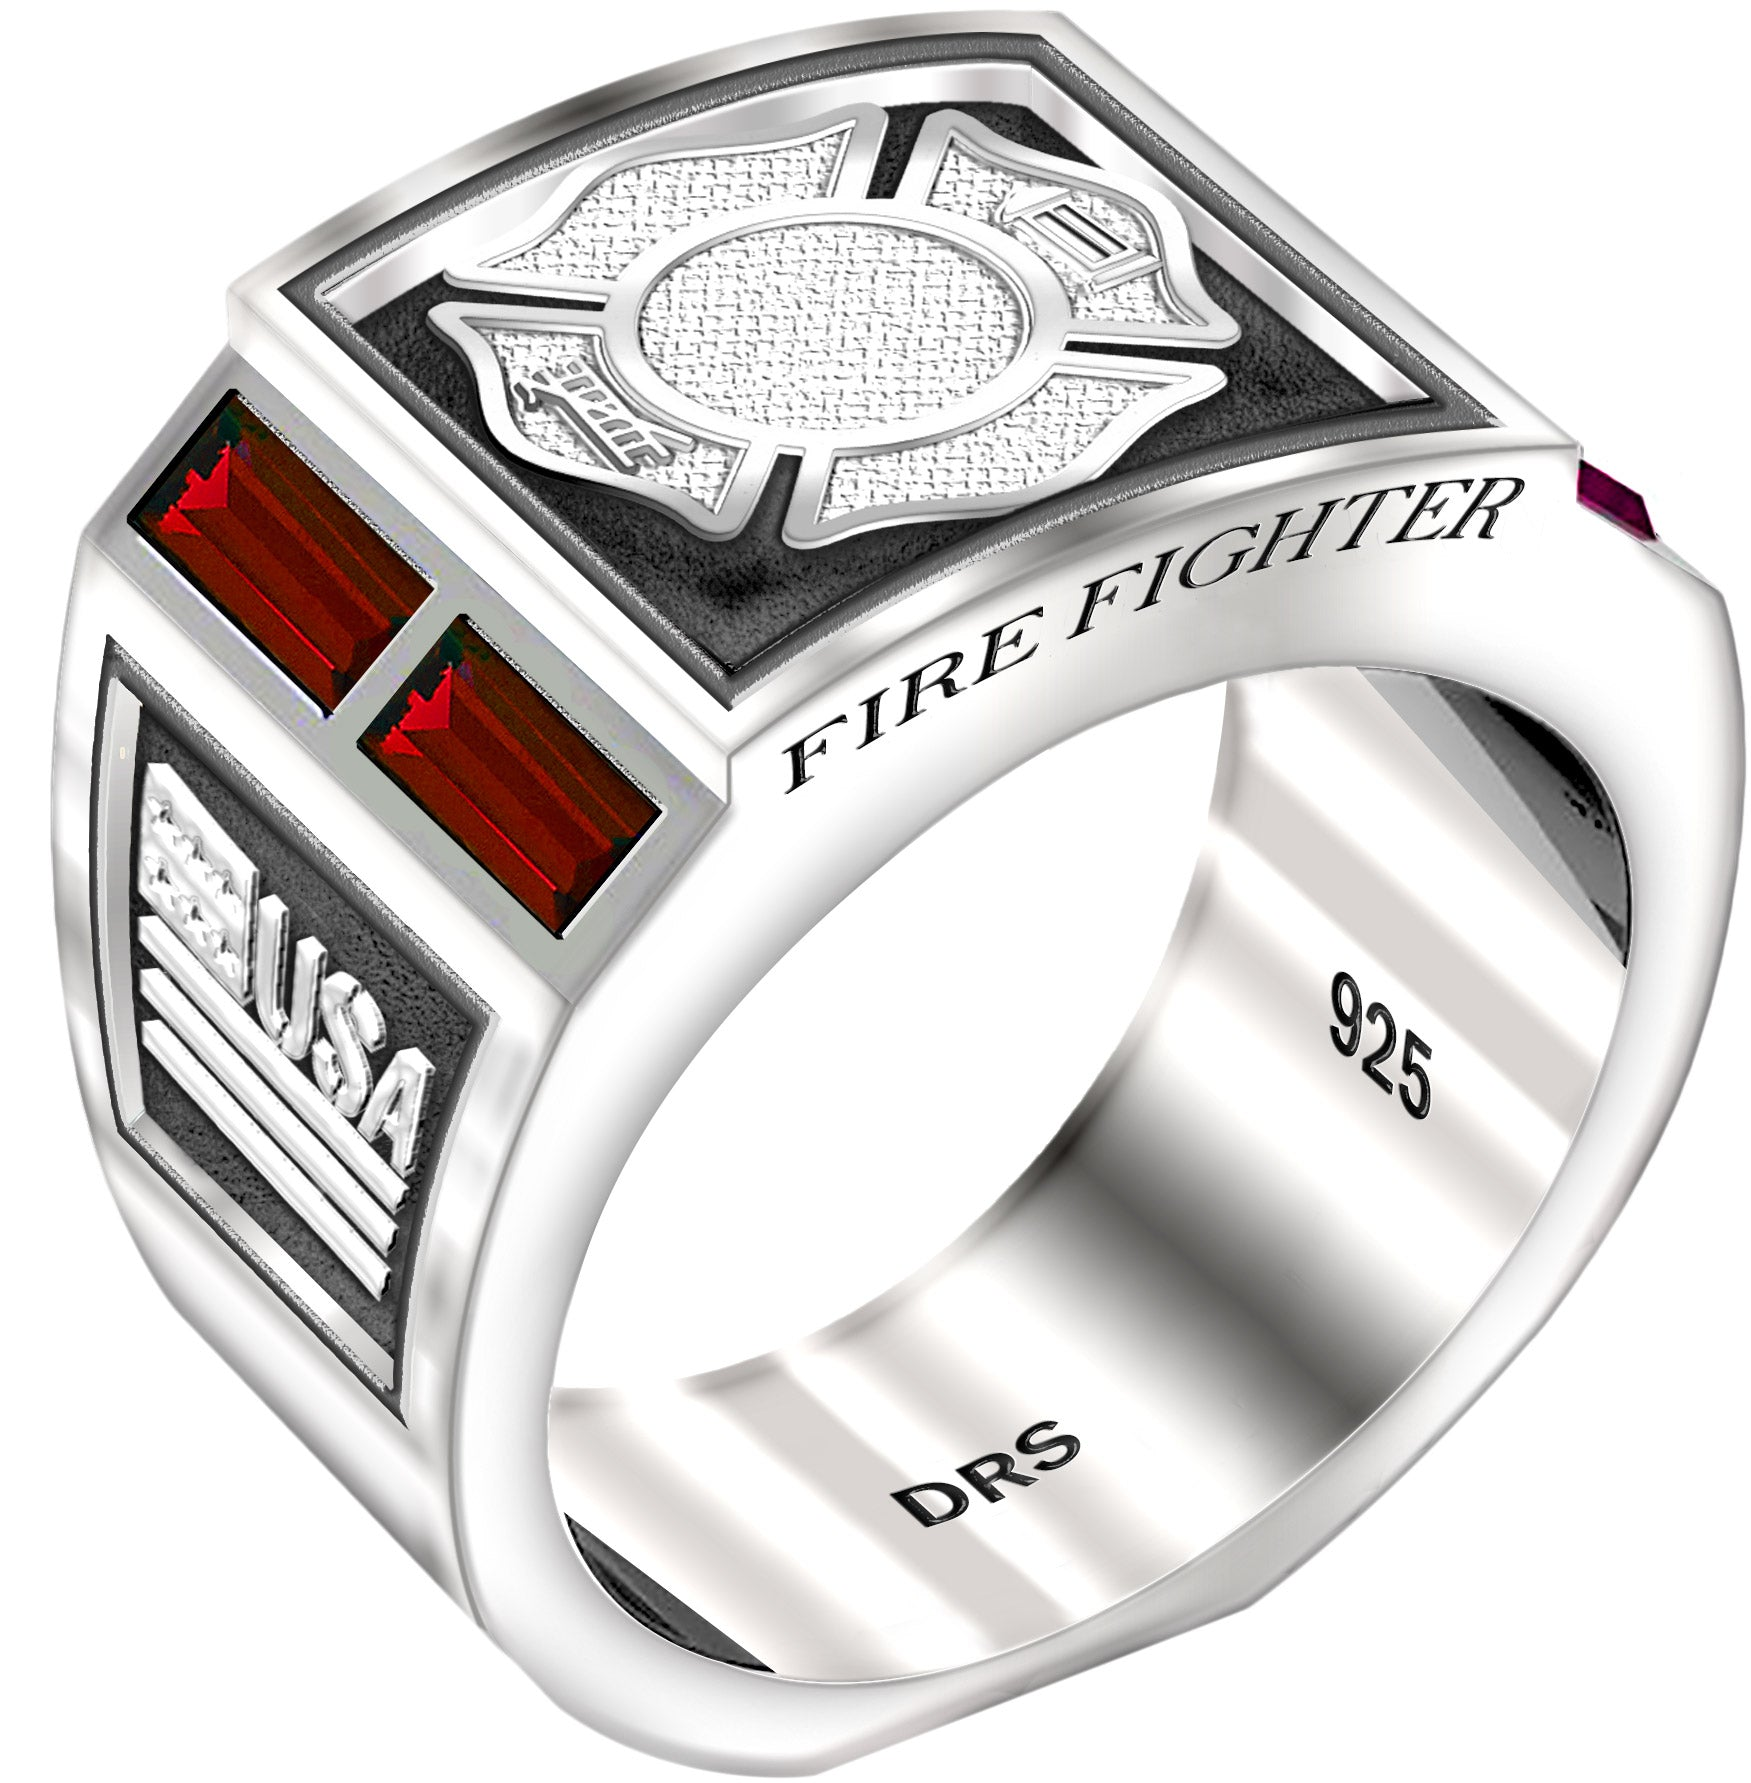 Sterling Silver Ring - Fire Fighter Ring With Ruby